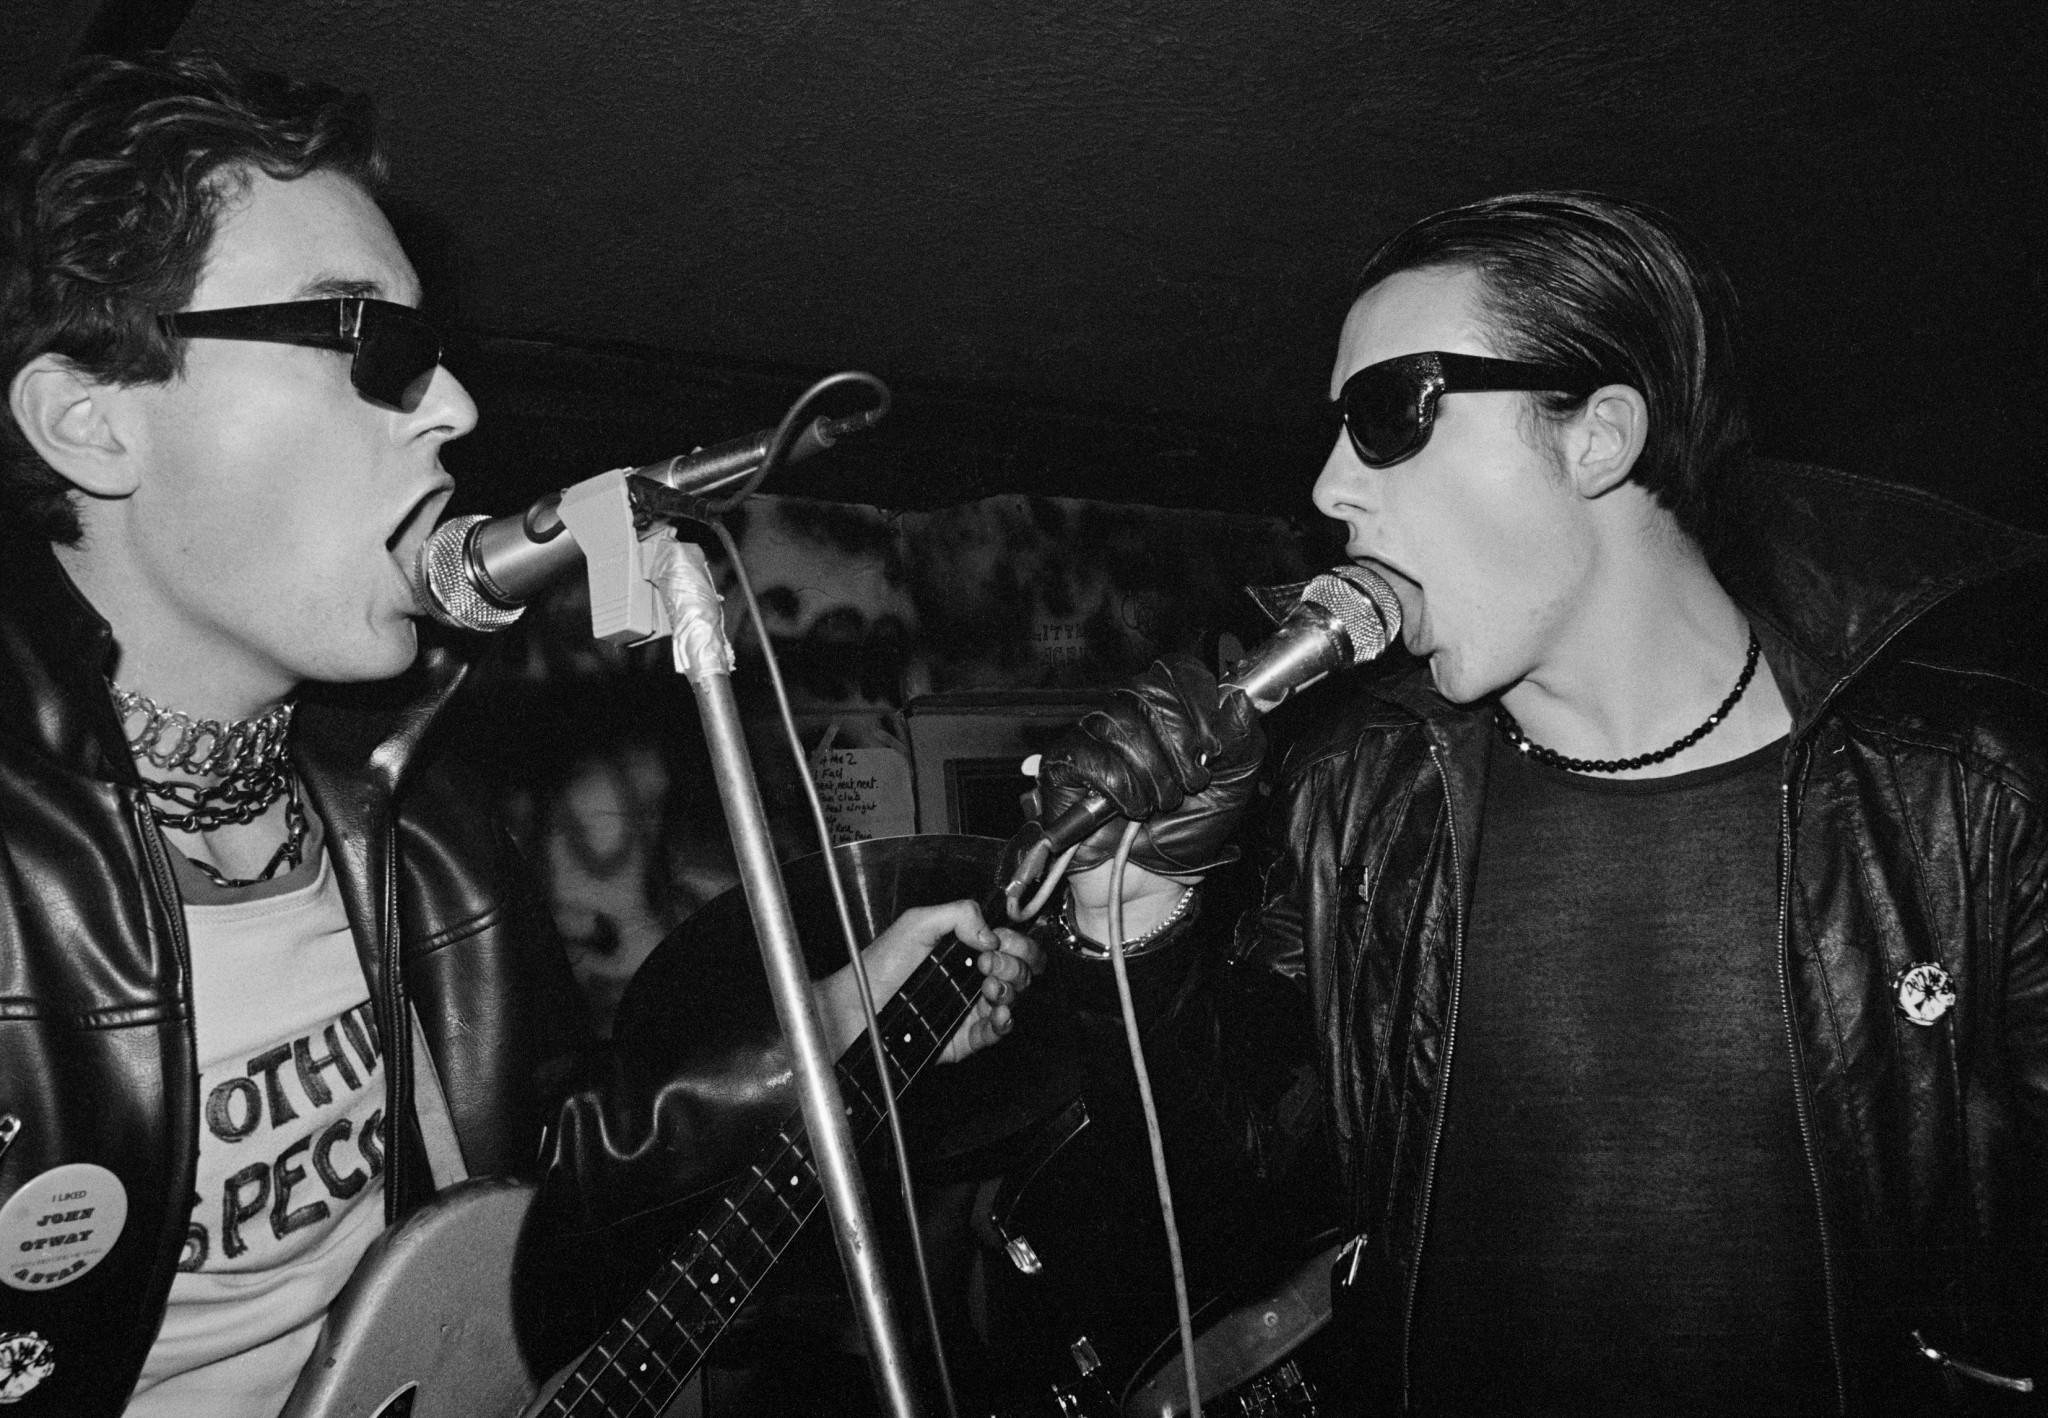 The-Damned-Captain-Sensible-David-Vanian-live-at-the-Hope-Anchor-London-1-January-1977-c-John-Ingham-1977